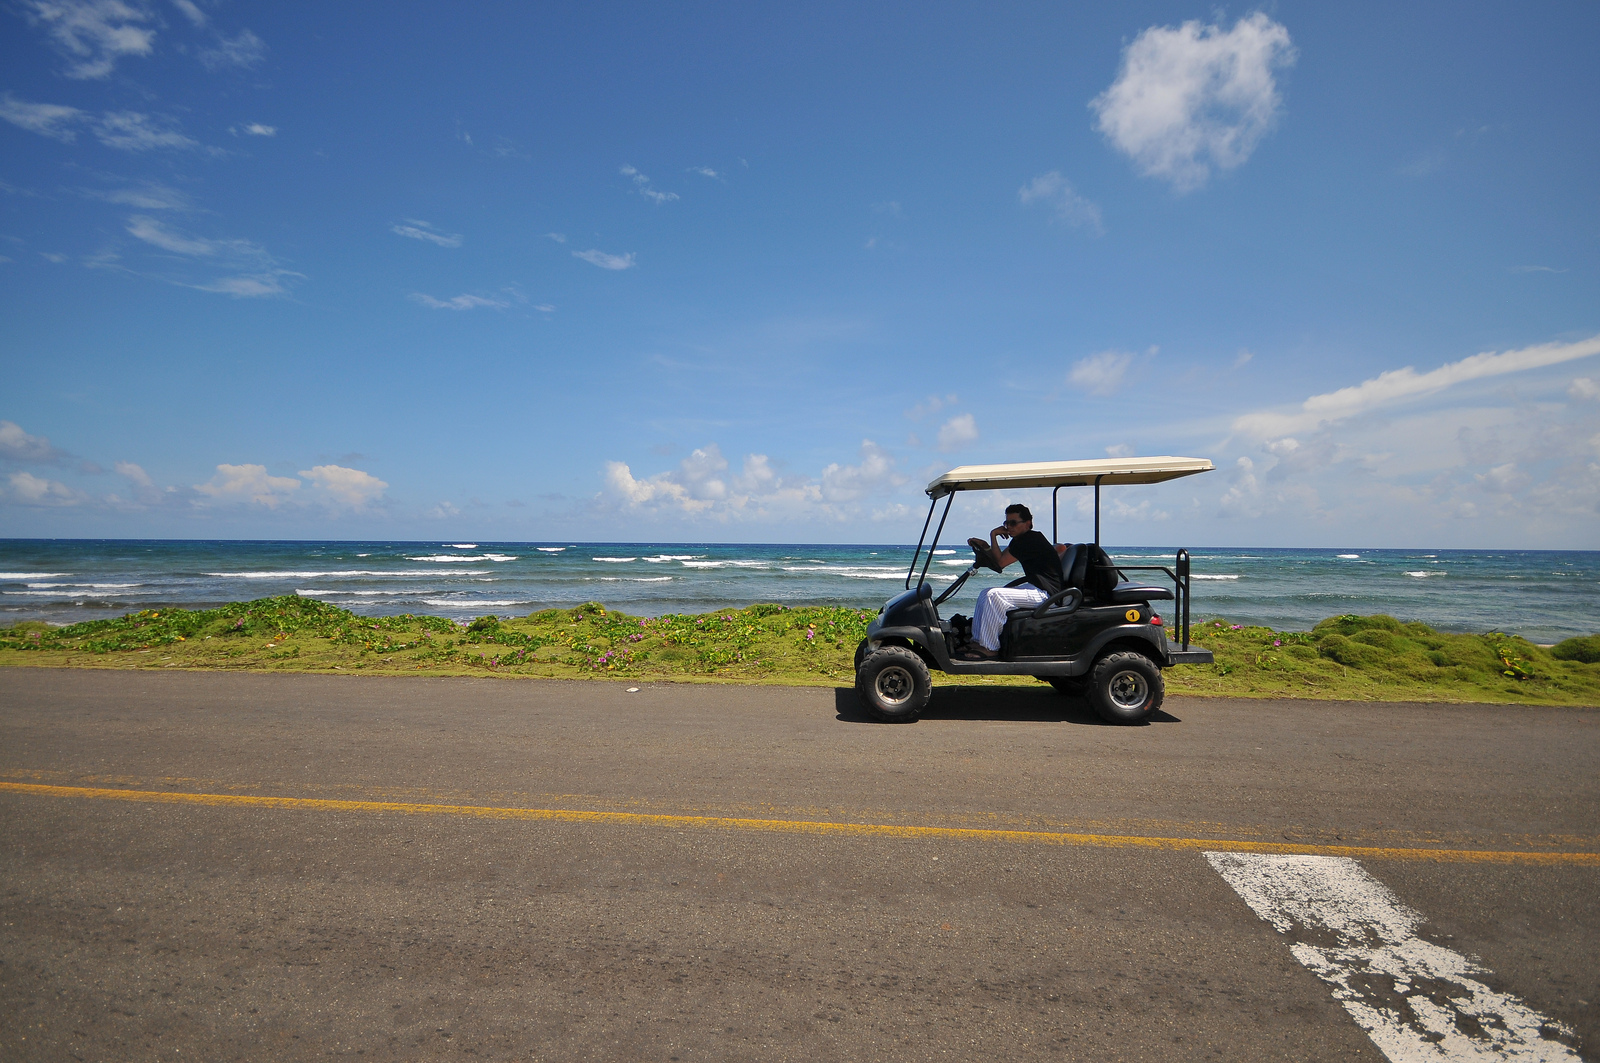 San Andres 2012 by Ashley Bayles